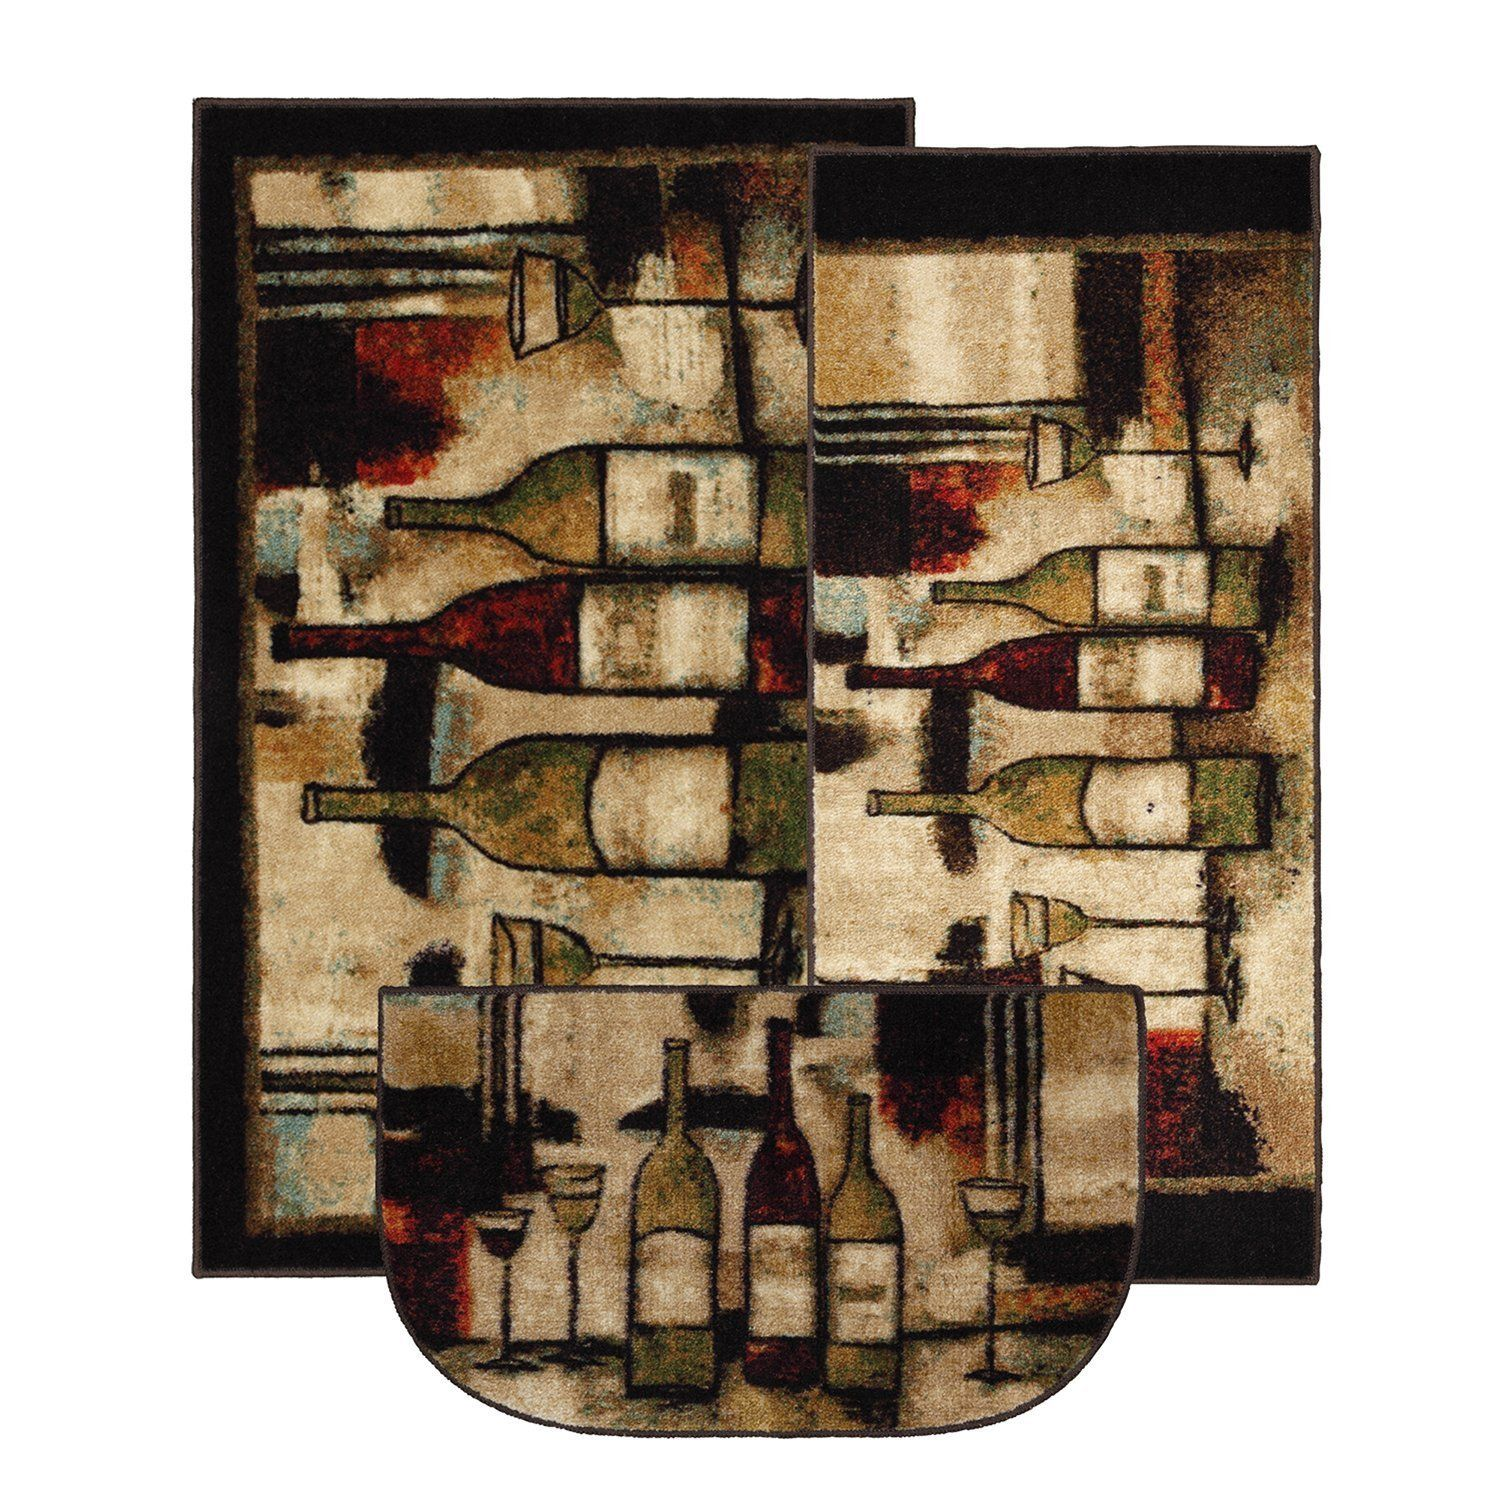 Mohawk home new wave wine and glasses printed rug piece rug set